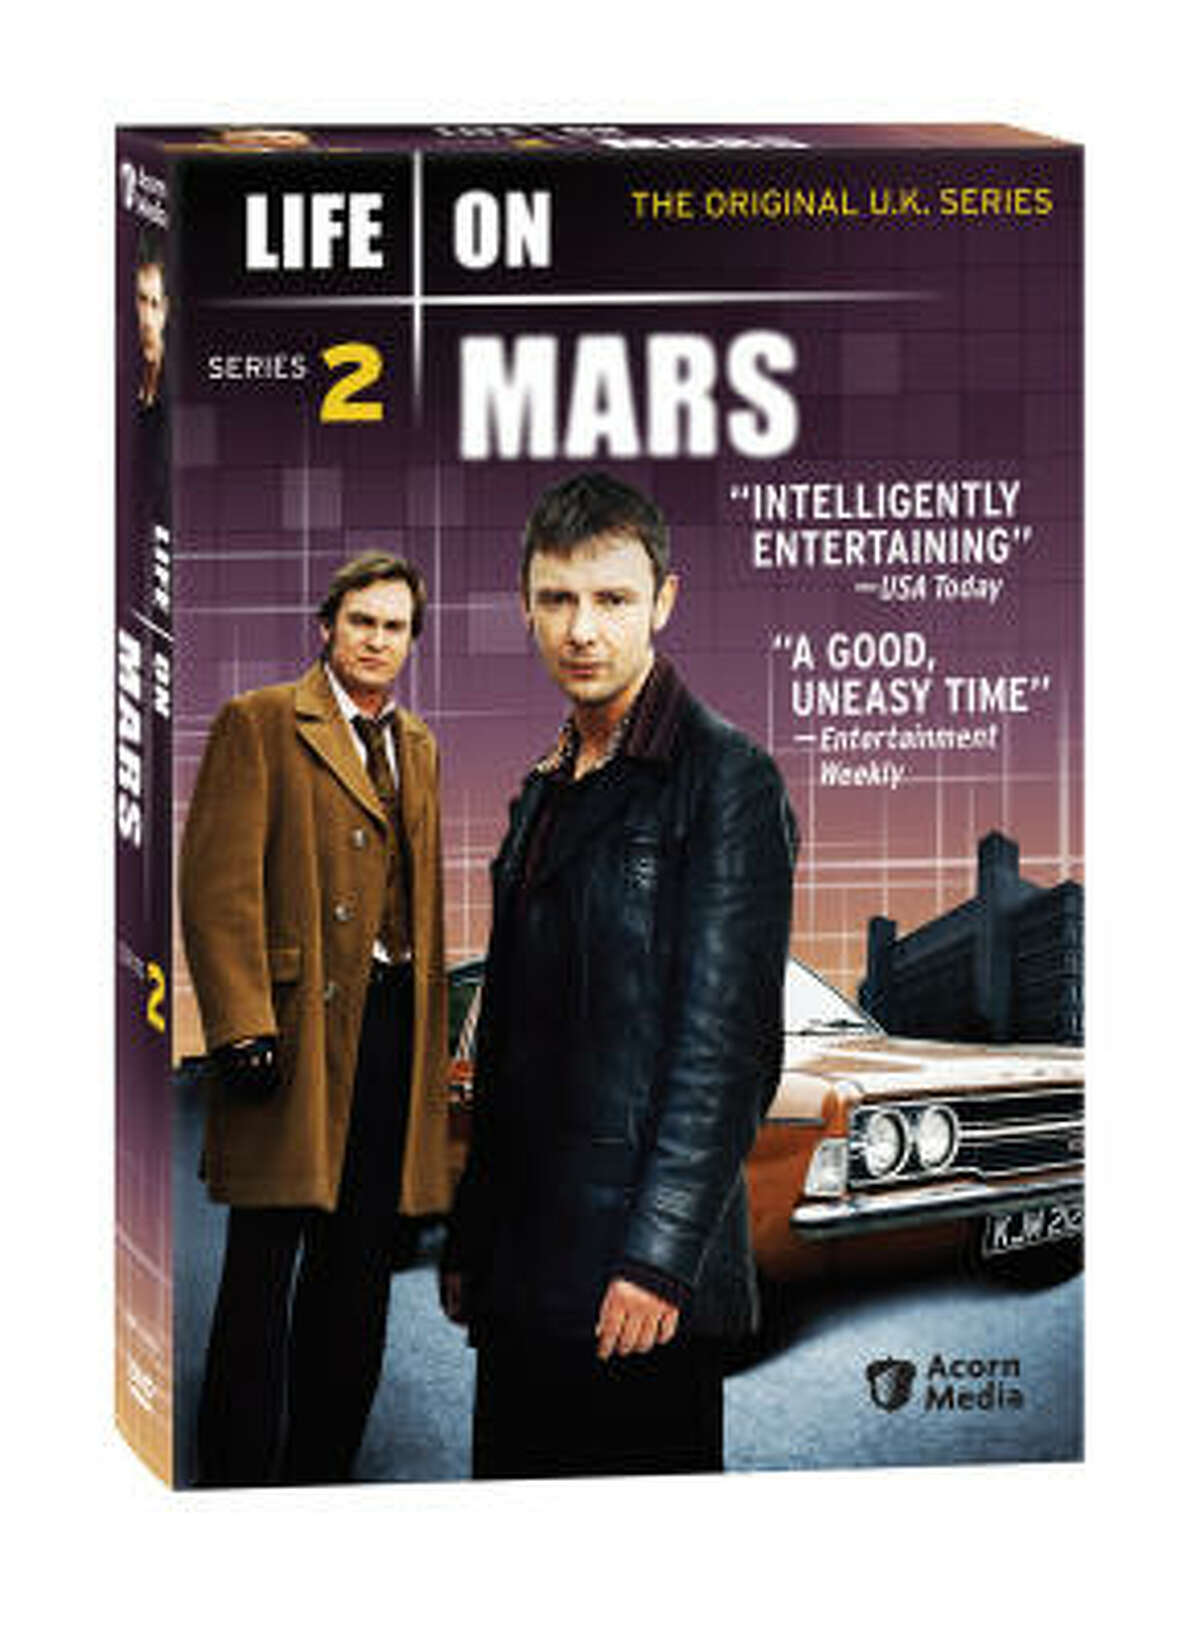 The BBC version of Life on Mars comes with plenty of extras.